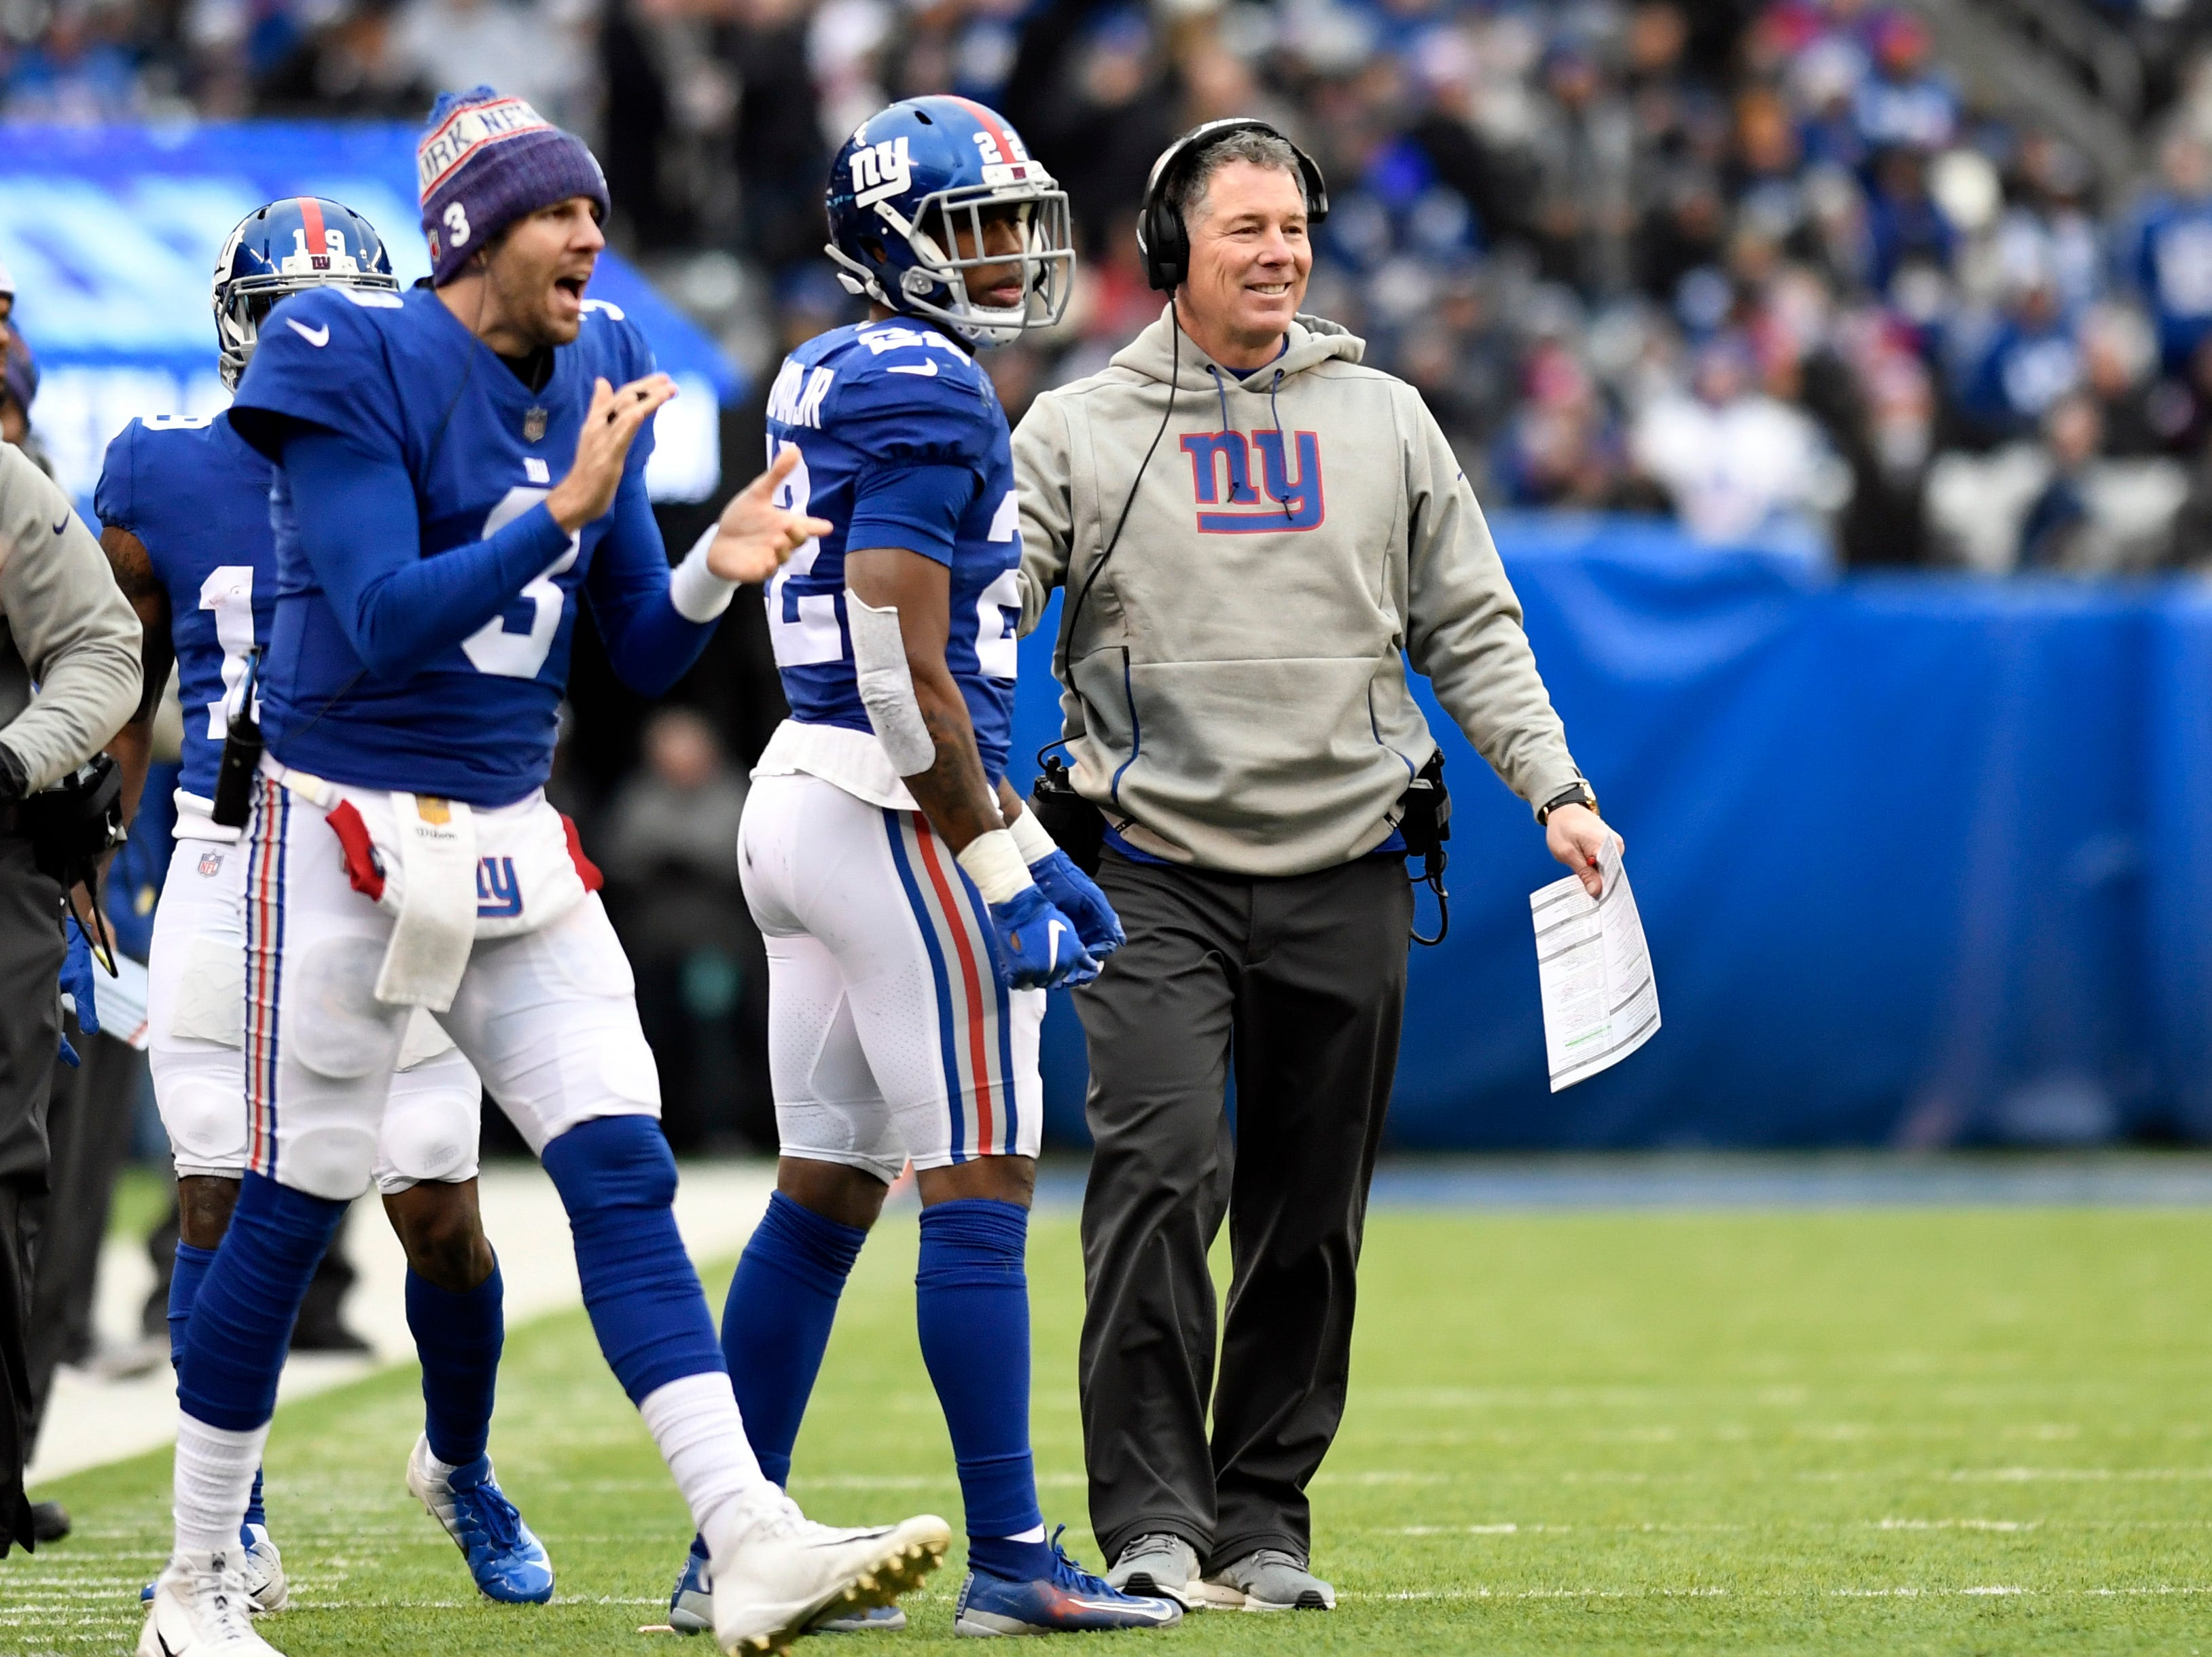 New York Giants head coach Pat Shurmur, far right, smiles after the Giants score a touchdown to end the first half. The New York Giants face the Dallas Cowboys in the last regular season game on Sunday, Dec. 30, 2018, in East Rutherford.